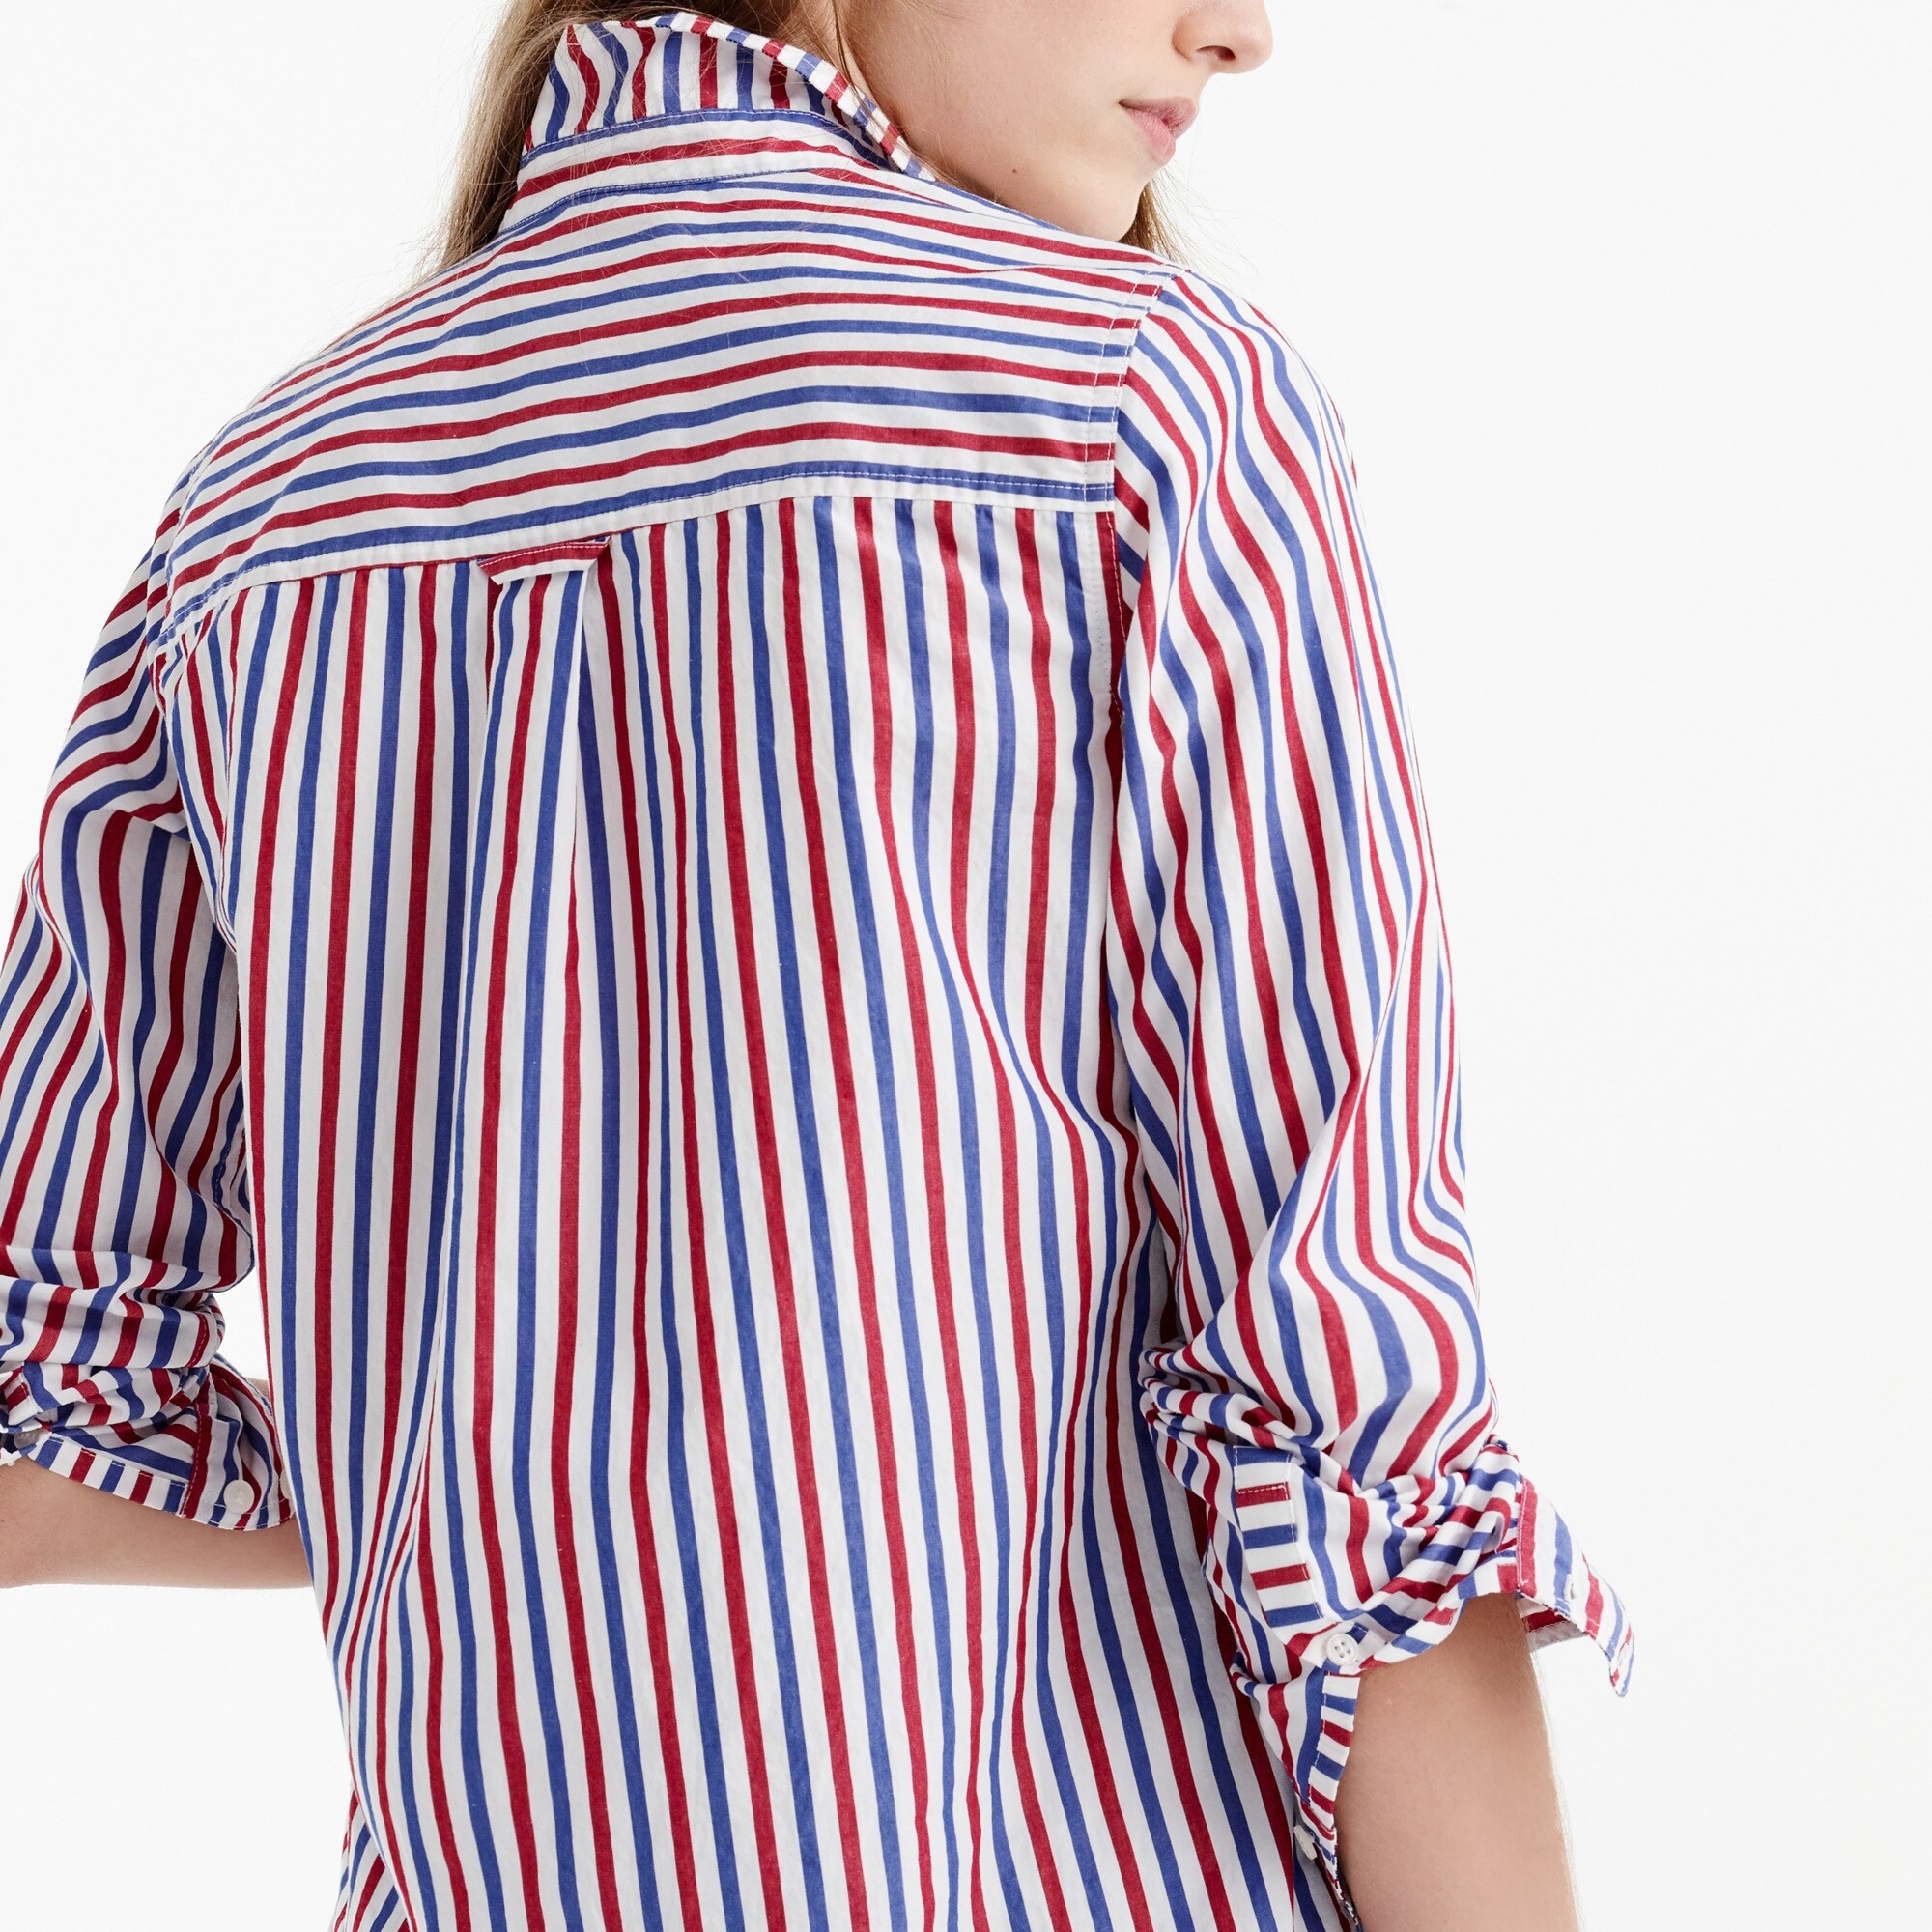 Classic-fit boy shirt in red-and-blue stripe women shirts & tops c